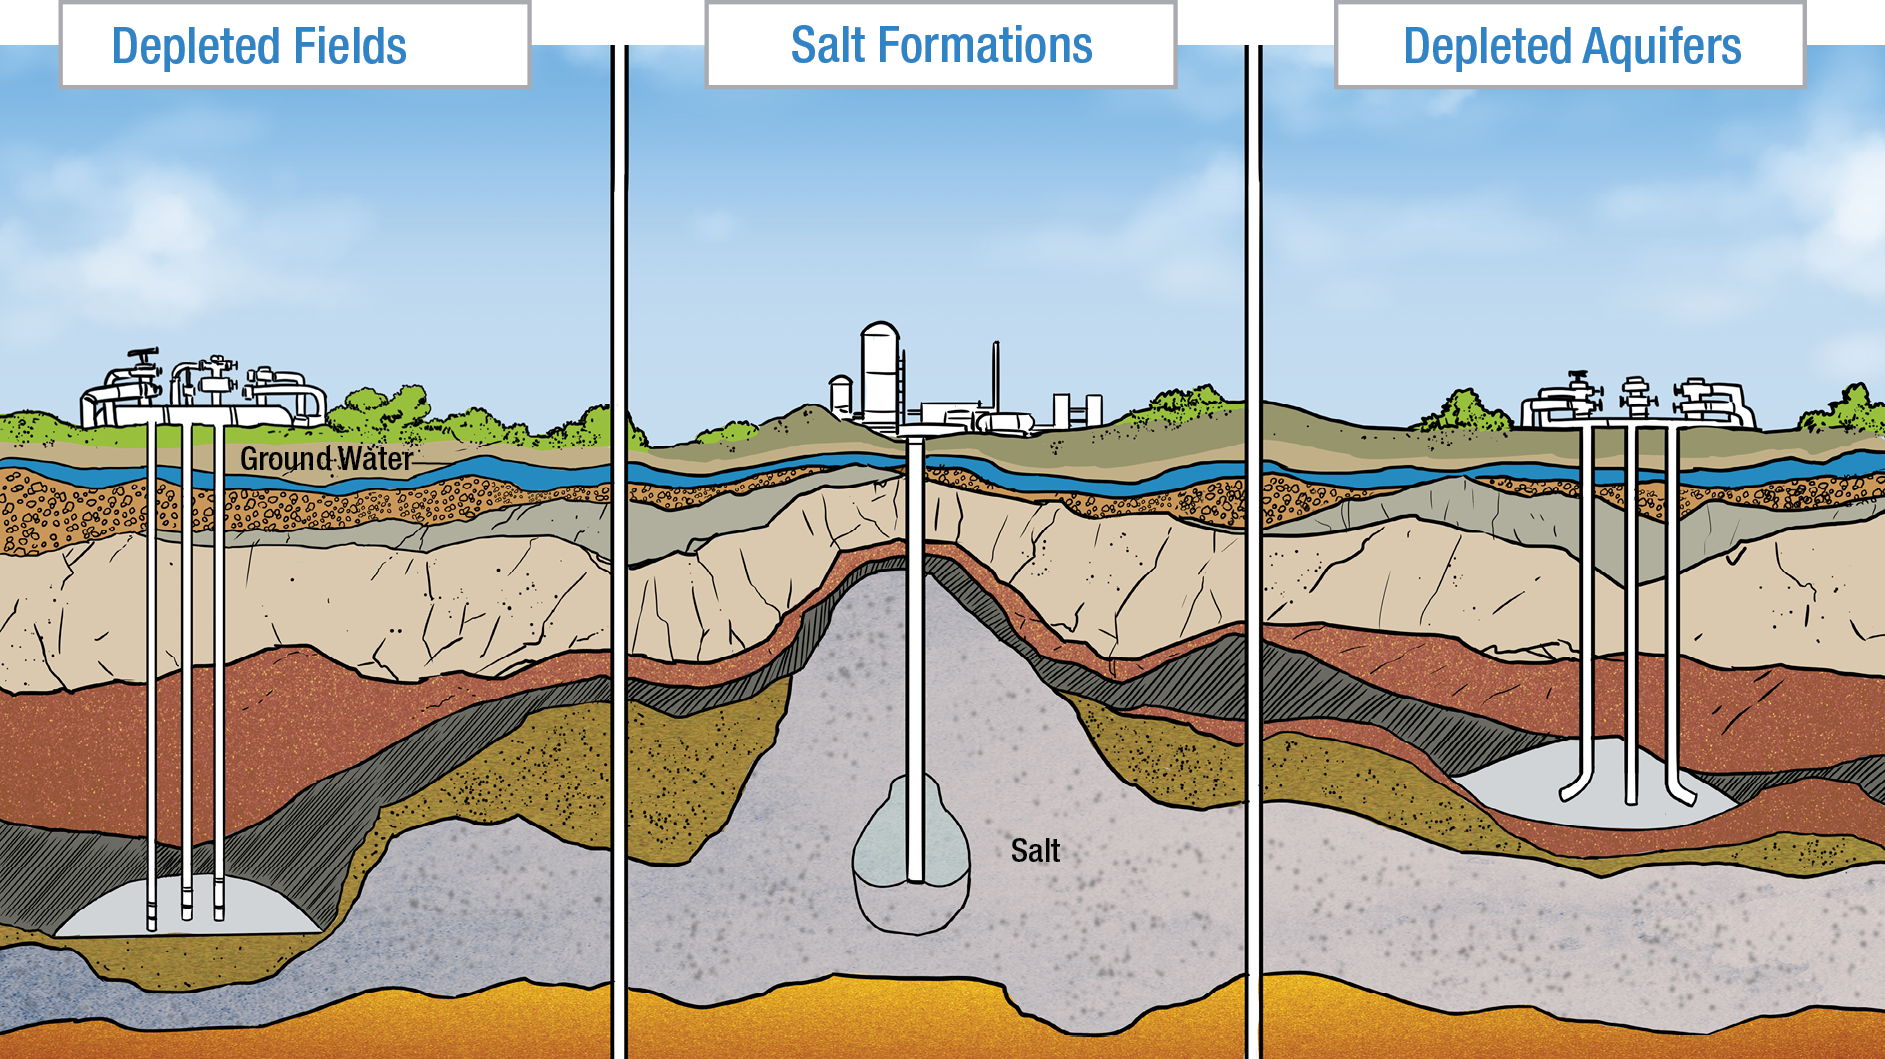 This image shows the different ways to store natural gas - in depleted field, salt formation or depleted aquifers